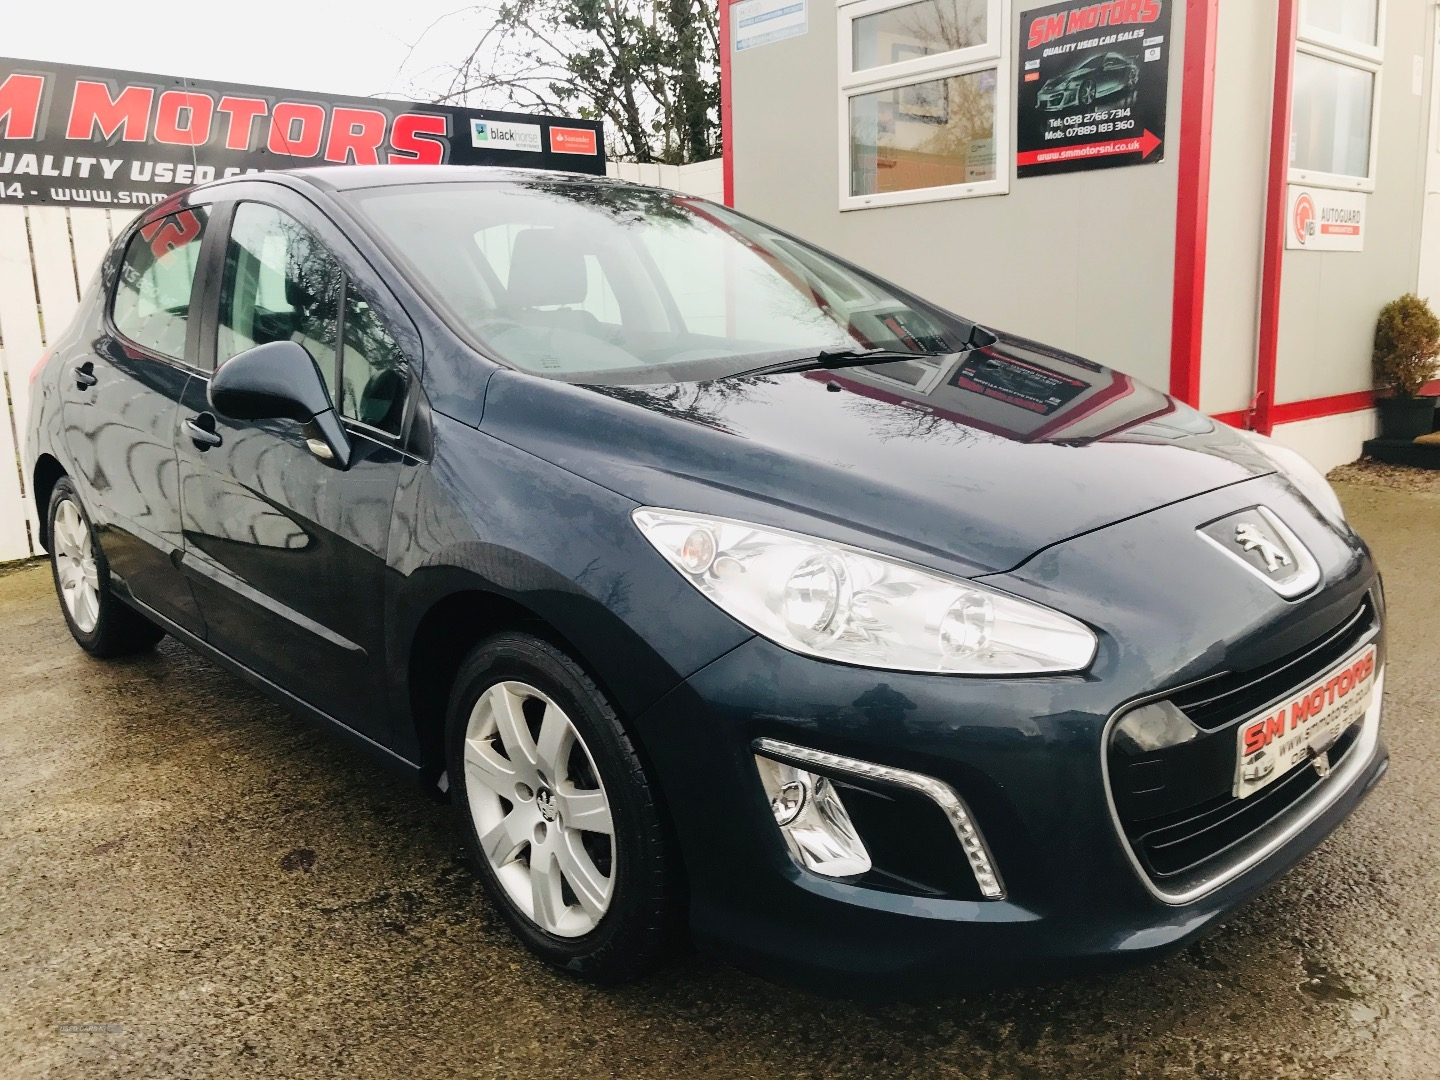 2013 Peugeot 308 1.6 HDi 92 Active 5dr 1.6 Diesel Manual ...